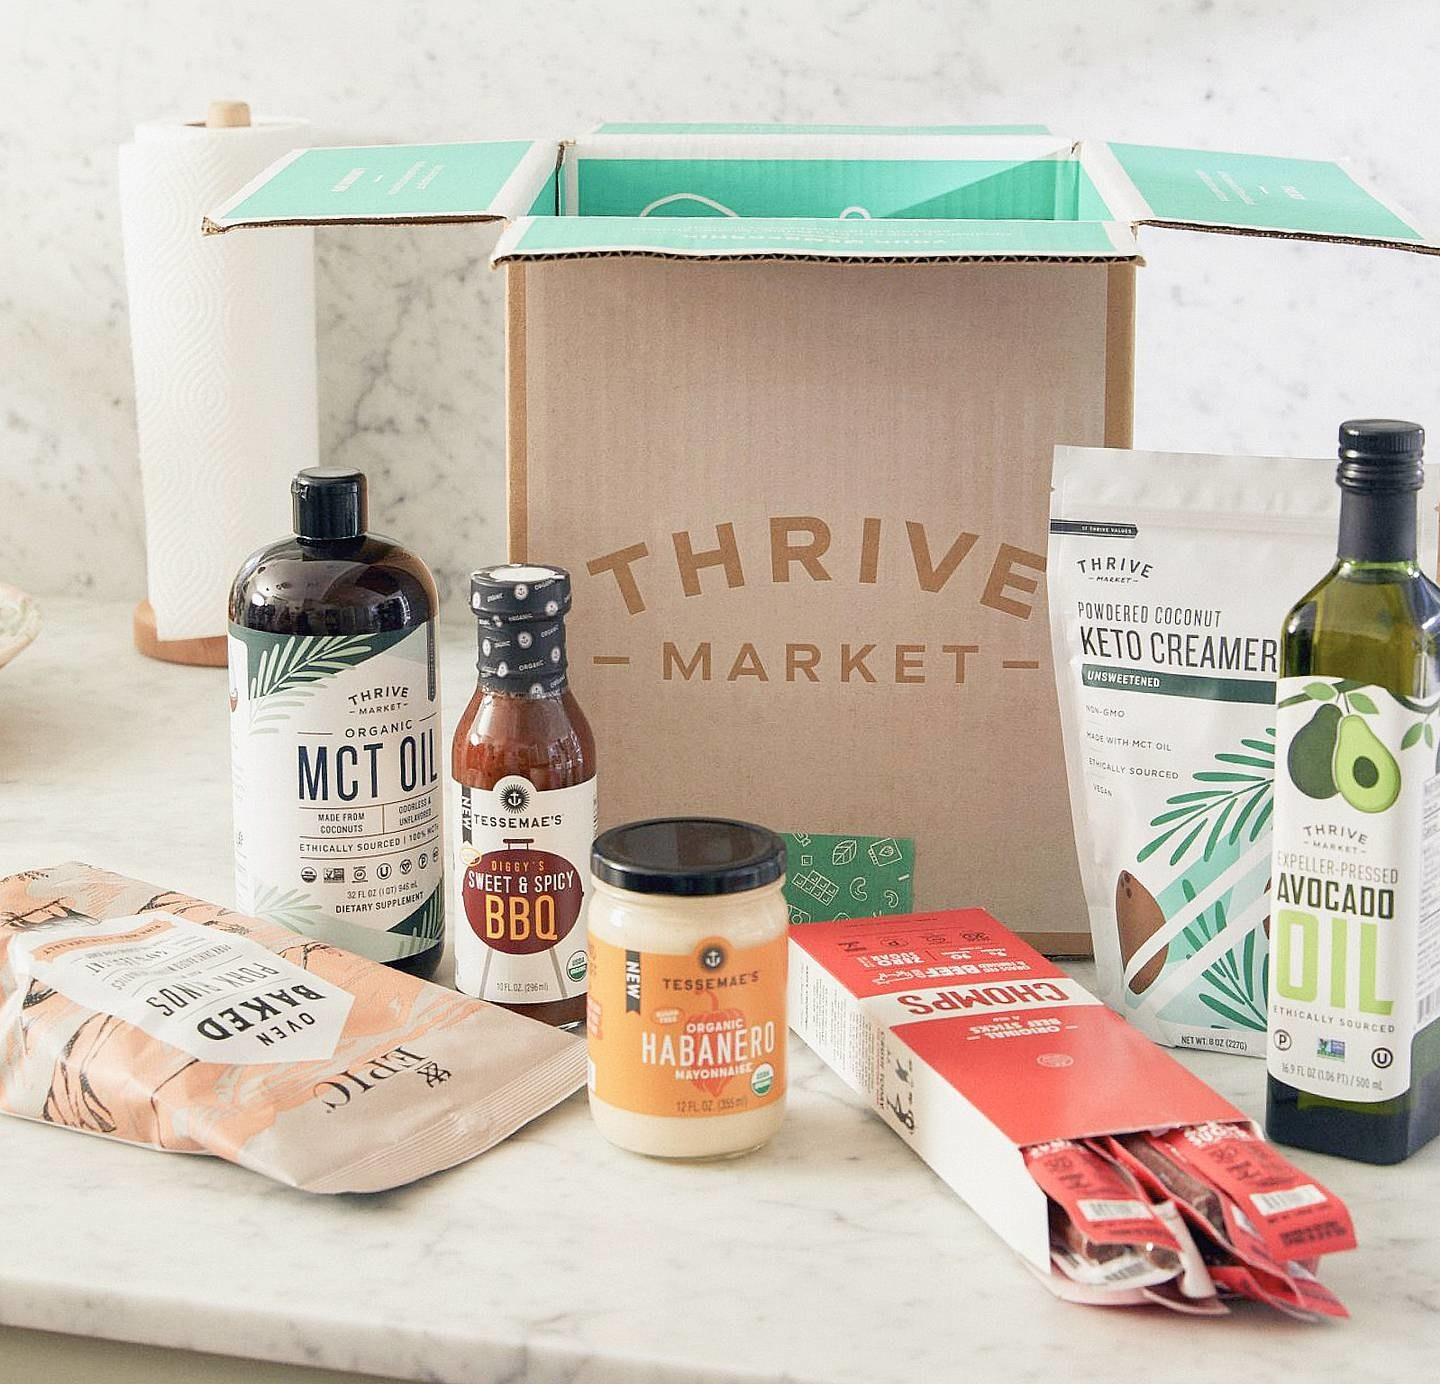 An open Thrive Market cardboard box surrounded by various grocery items like BBQ sauce,  jerkey sticks, and avocado oil